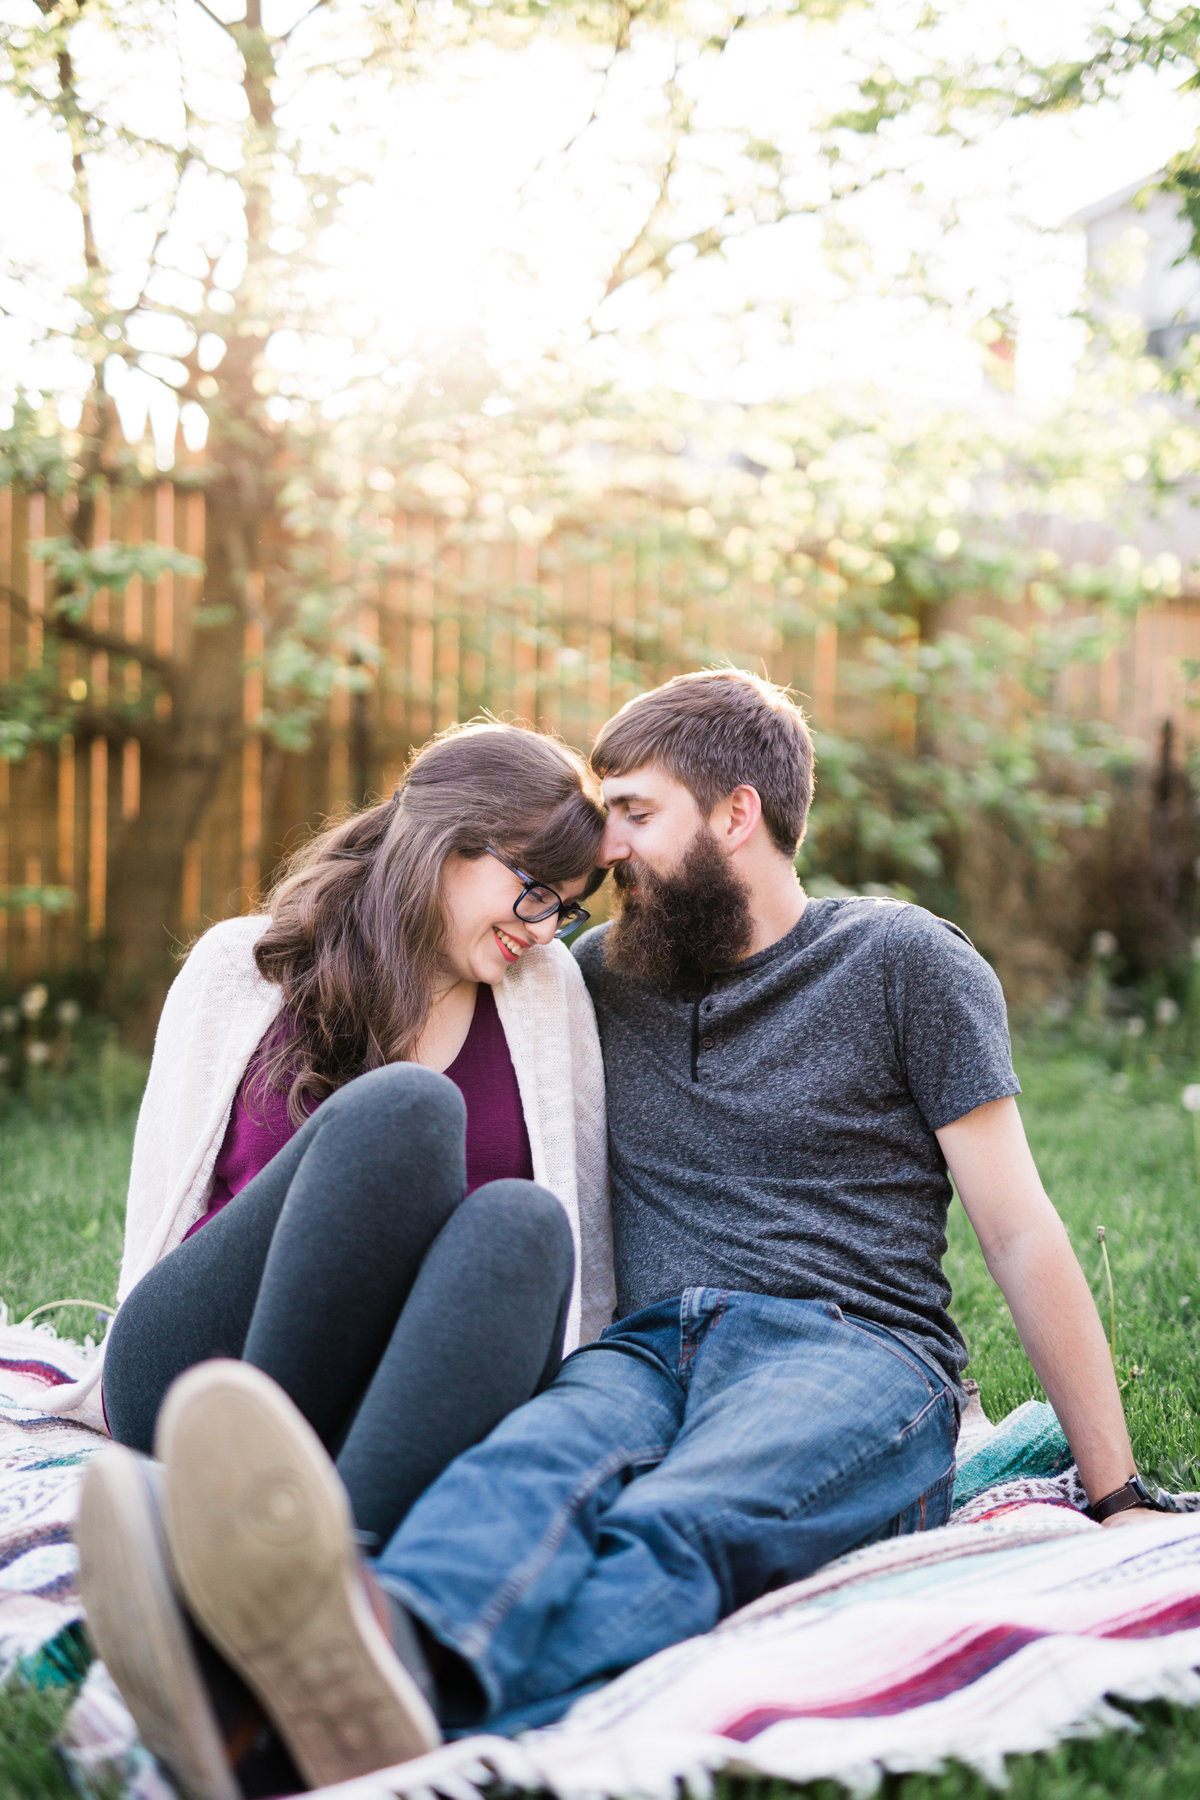 York city photographer - home engagement session